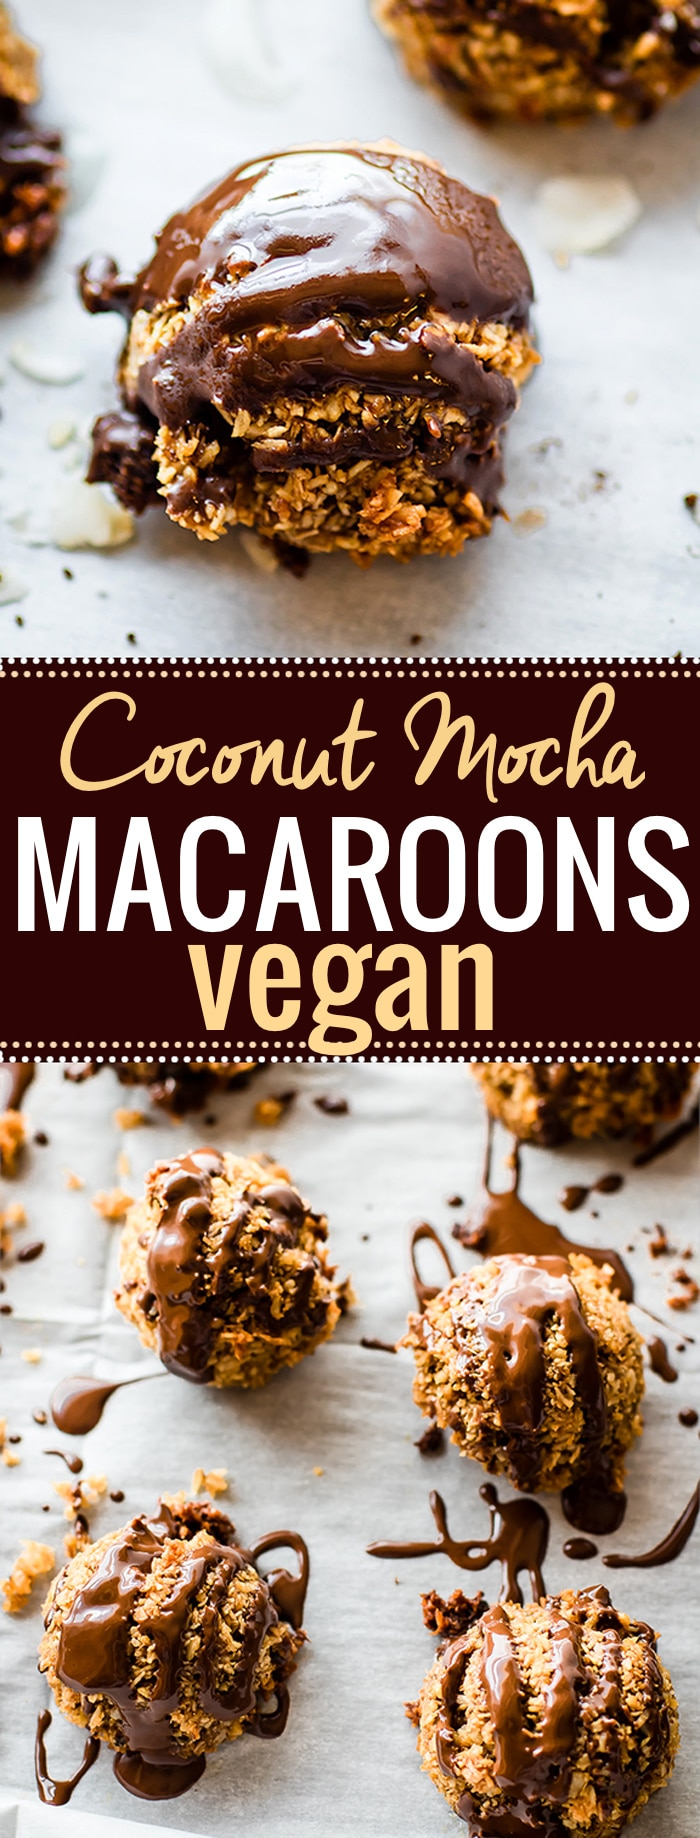 "Vegan Macaroons made EASY and QUICK! These Mocha Coconut Vegan Macaroons ""coco-roons"" are flavored with dark chocolate, espresso, and bourbon vanilla. A healthy cookie that you will love! Made with a few simple ingredients and are gluten free! @cottercrunch"